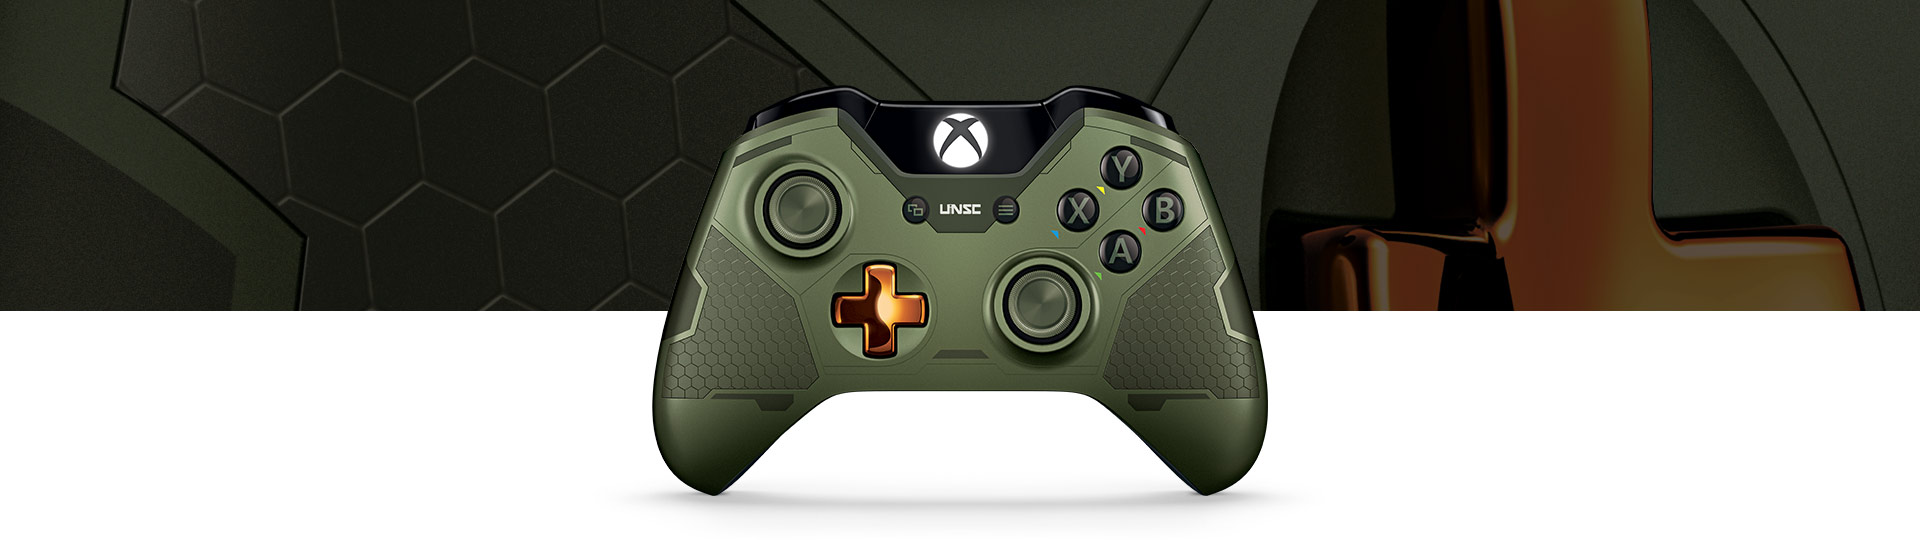 Controller Wireless per Xbox One Edizione limitata Halo 5: Guardians - Master Chief